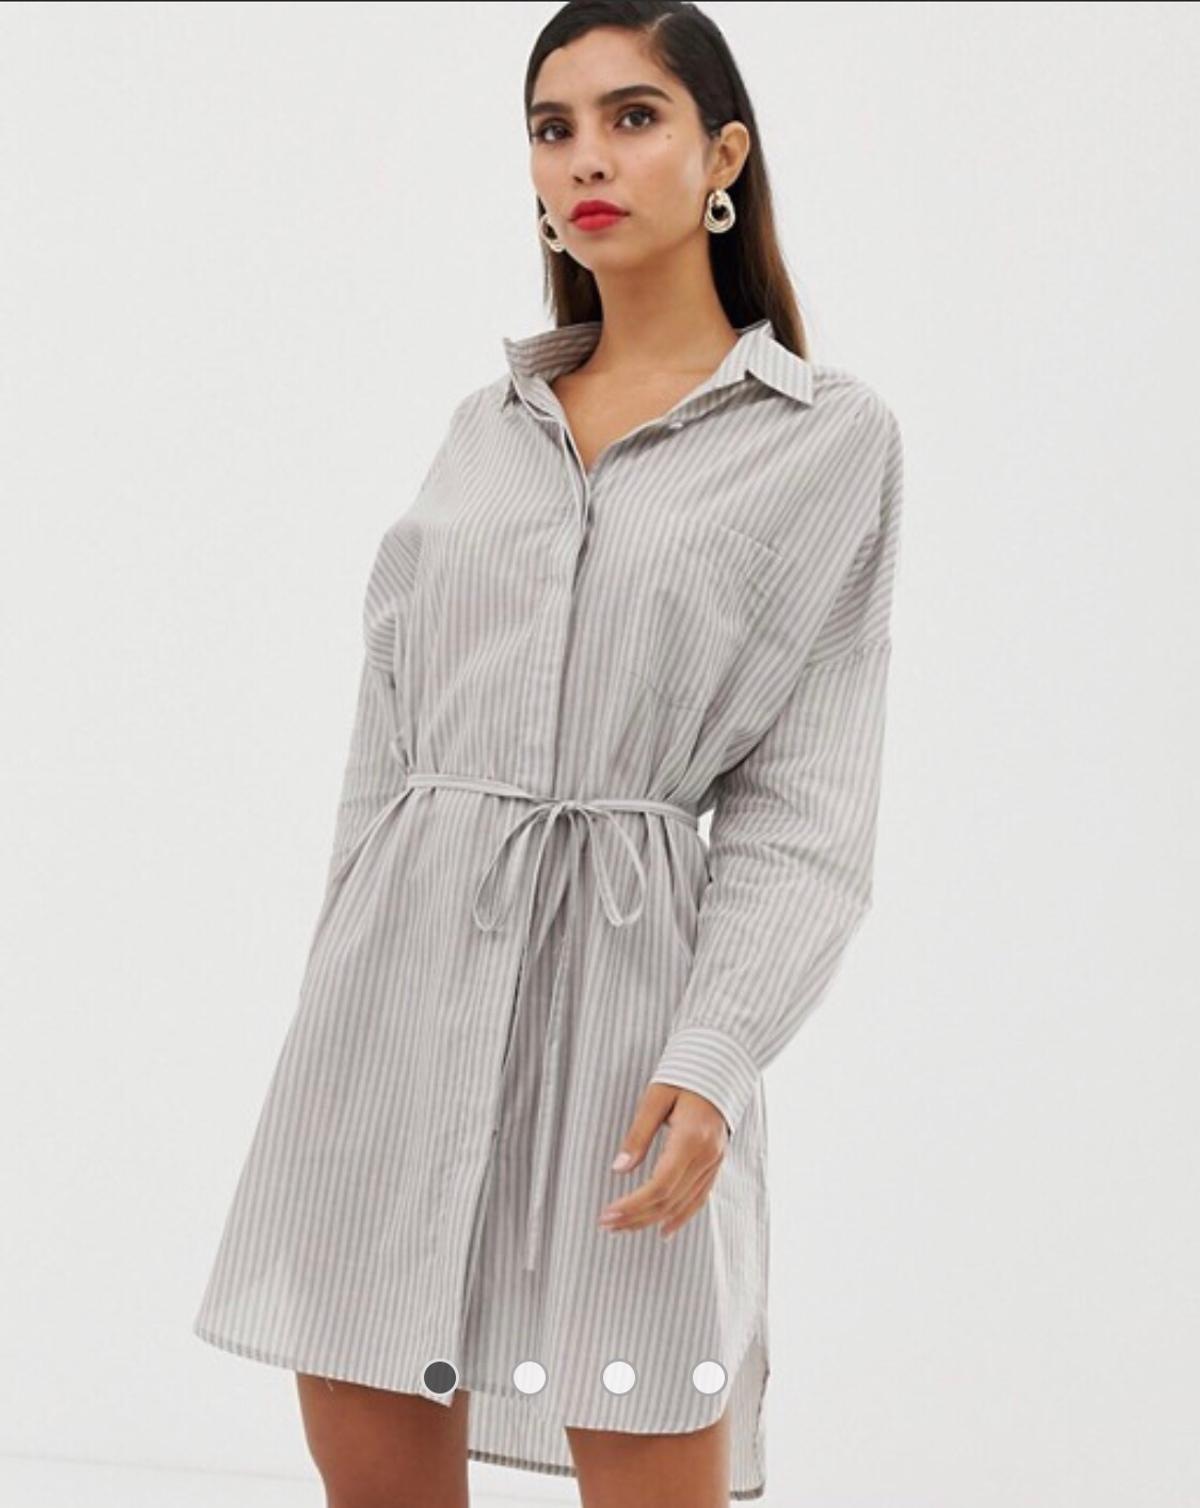 THIS IS A BRAND WITH TAGS ON NEW FRENCH CONNECTION SHIRT DRESS SIZE MEDIUM Currently selling on Asos at £65  Come From A Smoke Free & Pet Free Home Please Check Out My Other Items For Sale!!